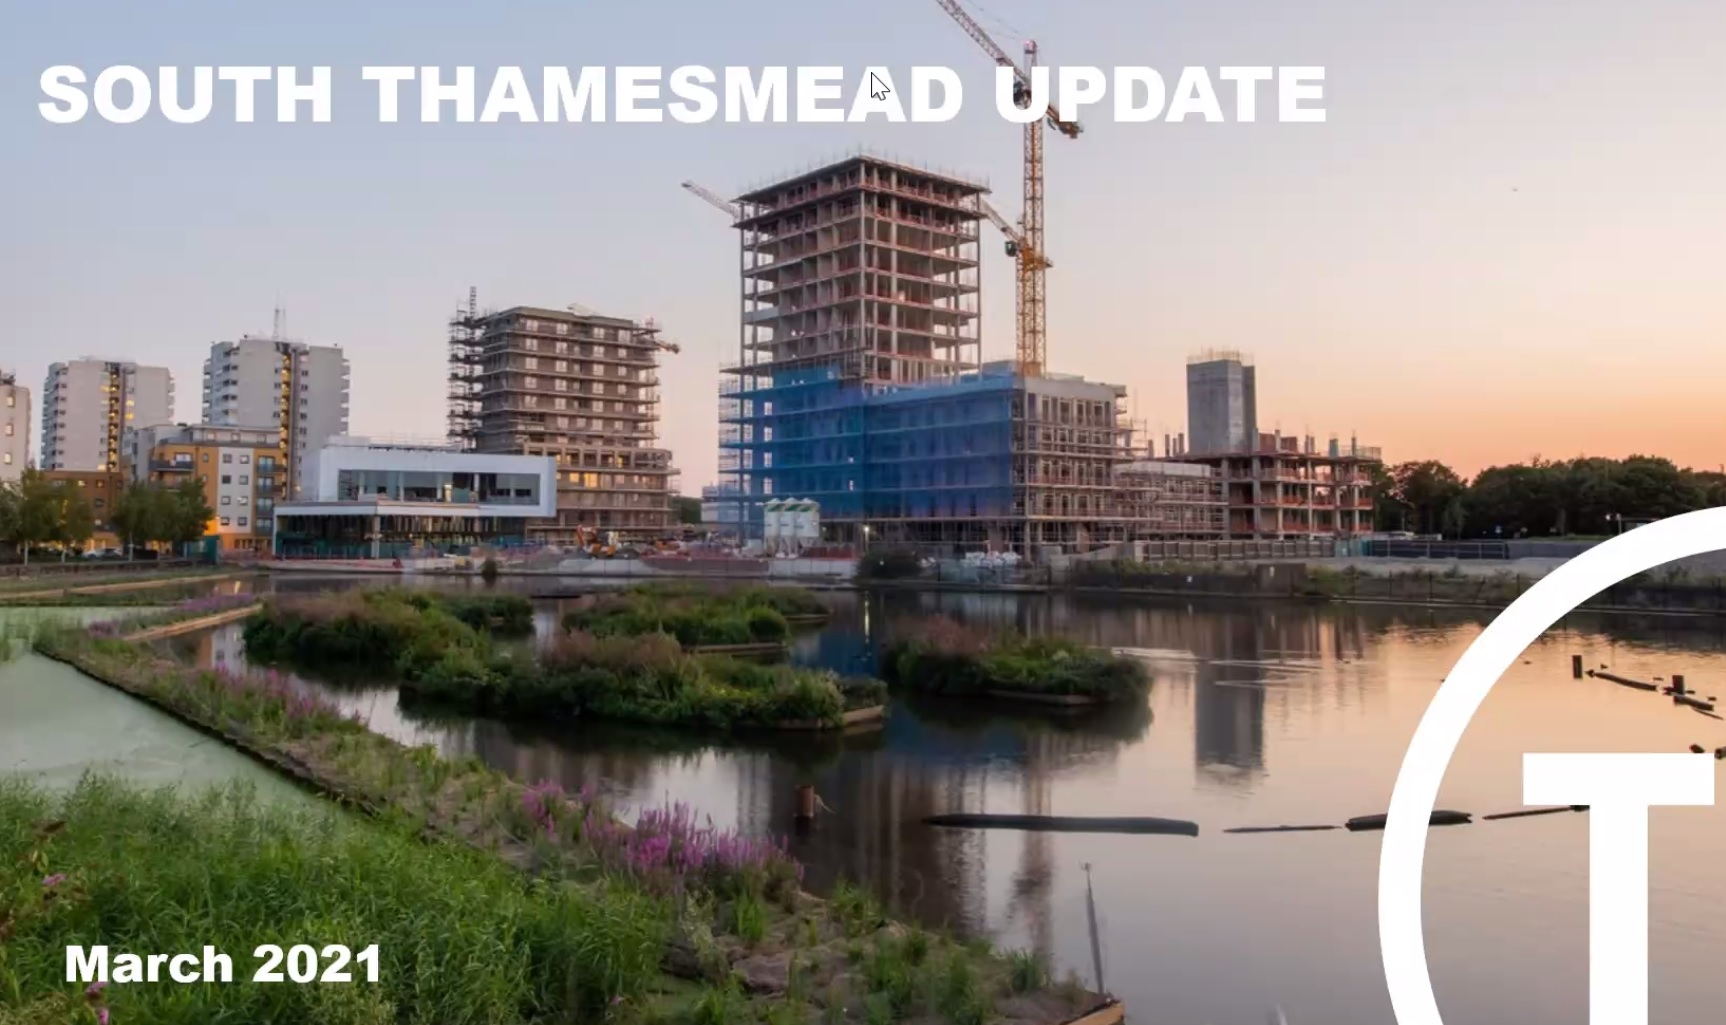 Peabody present Thamesmead development update